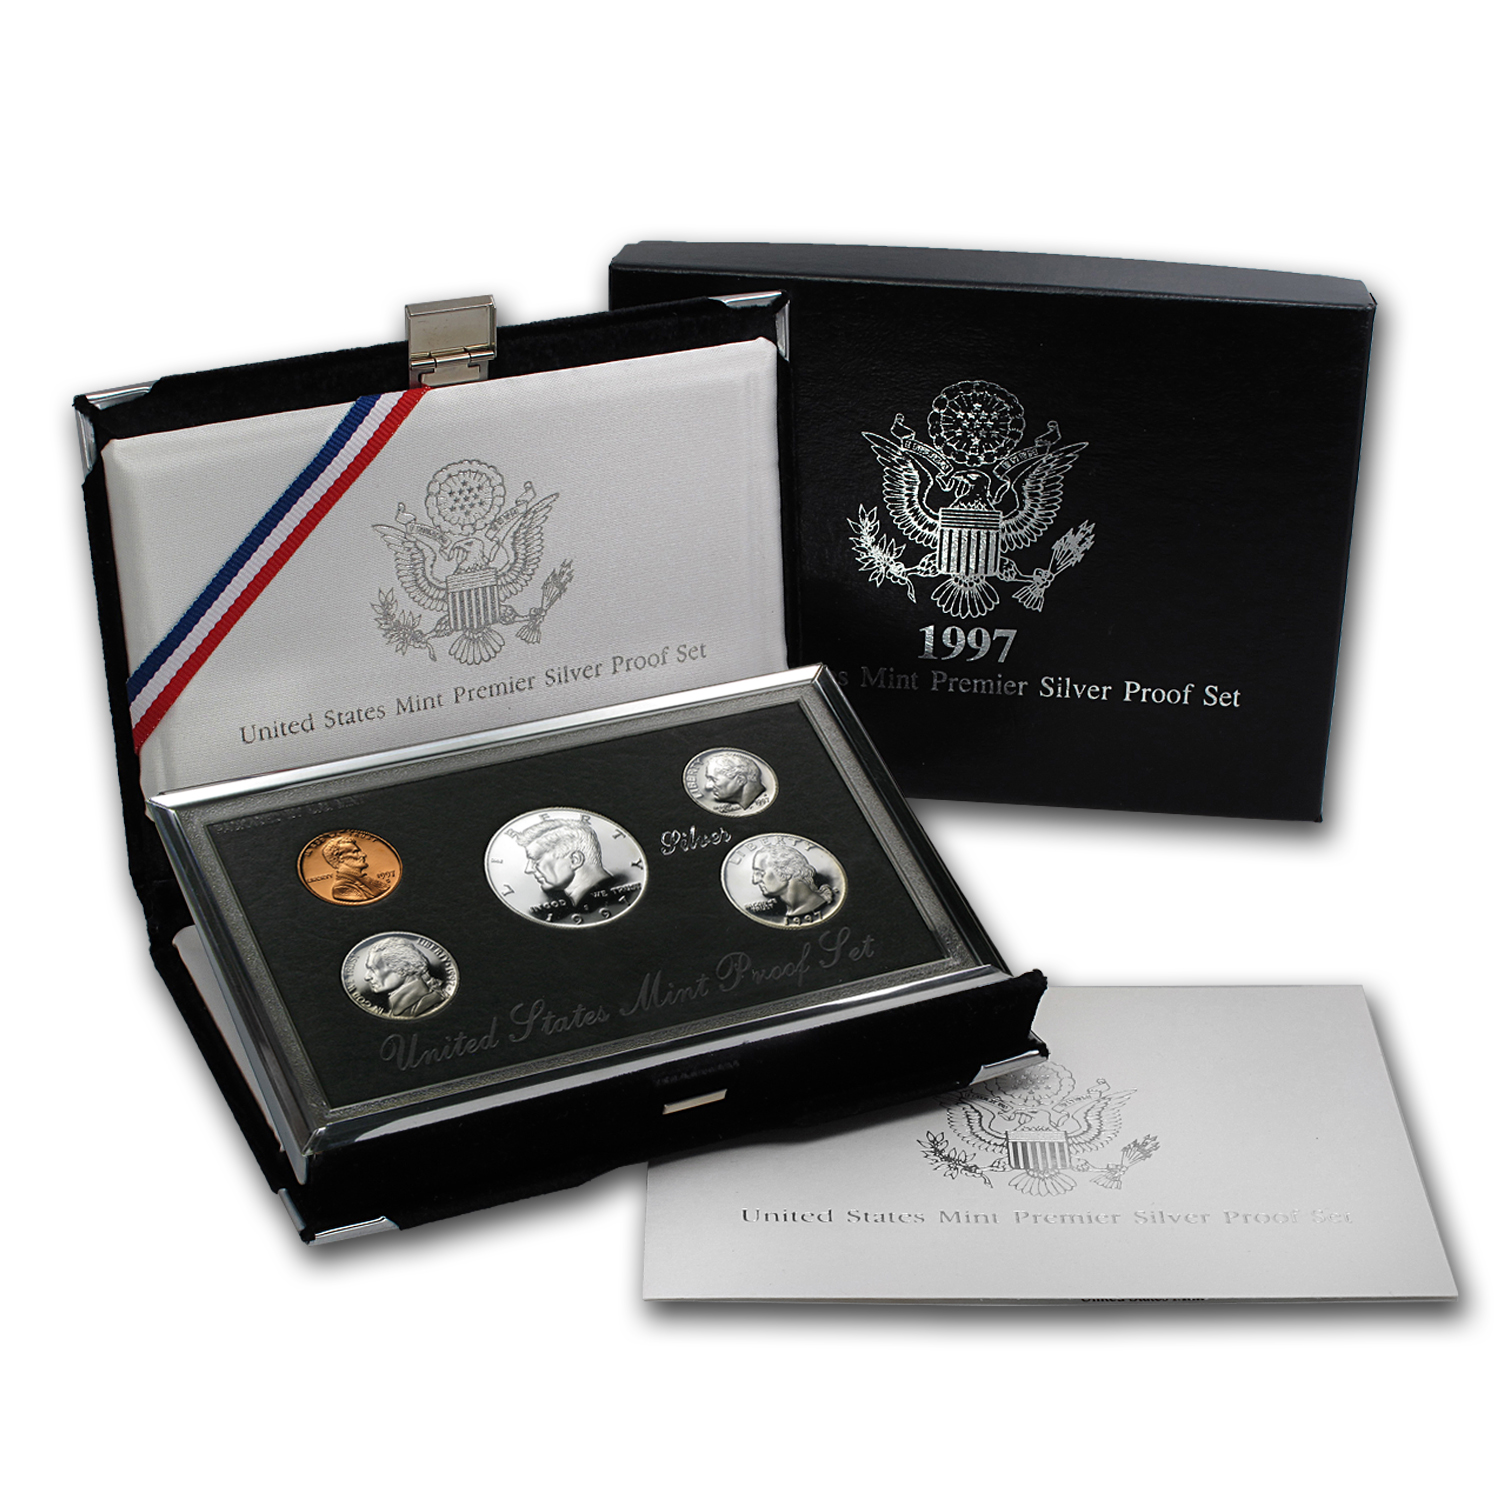 1997 Premier Silver Proof Set